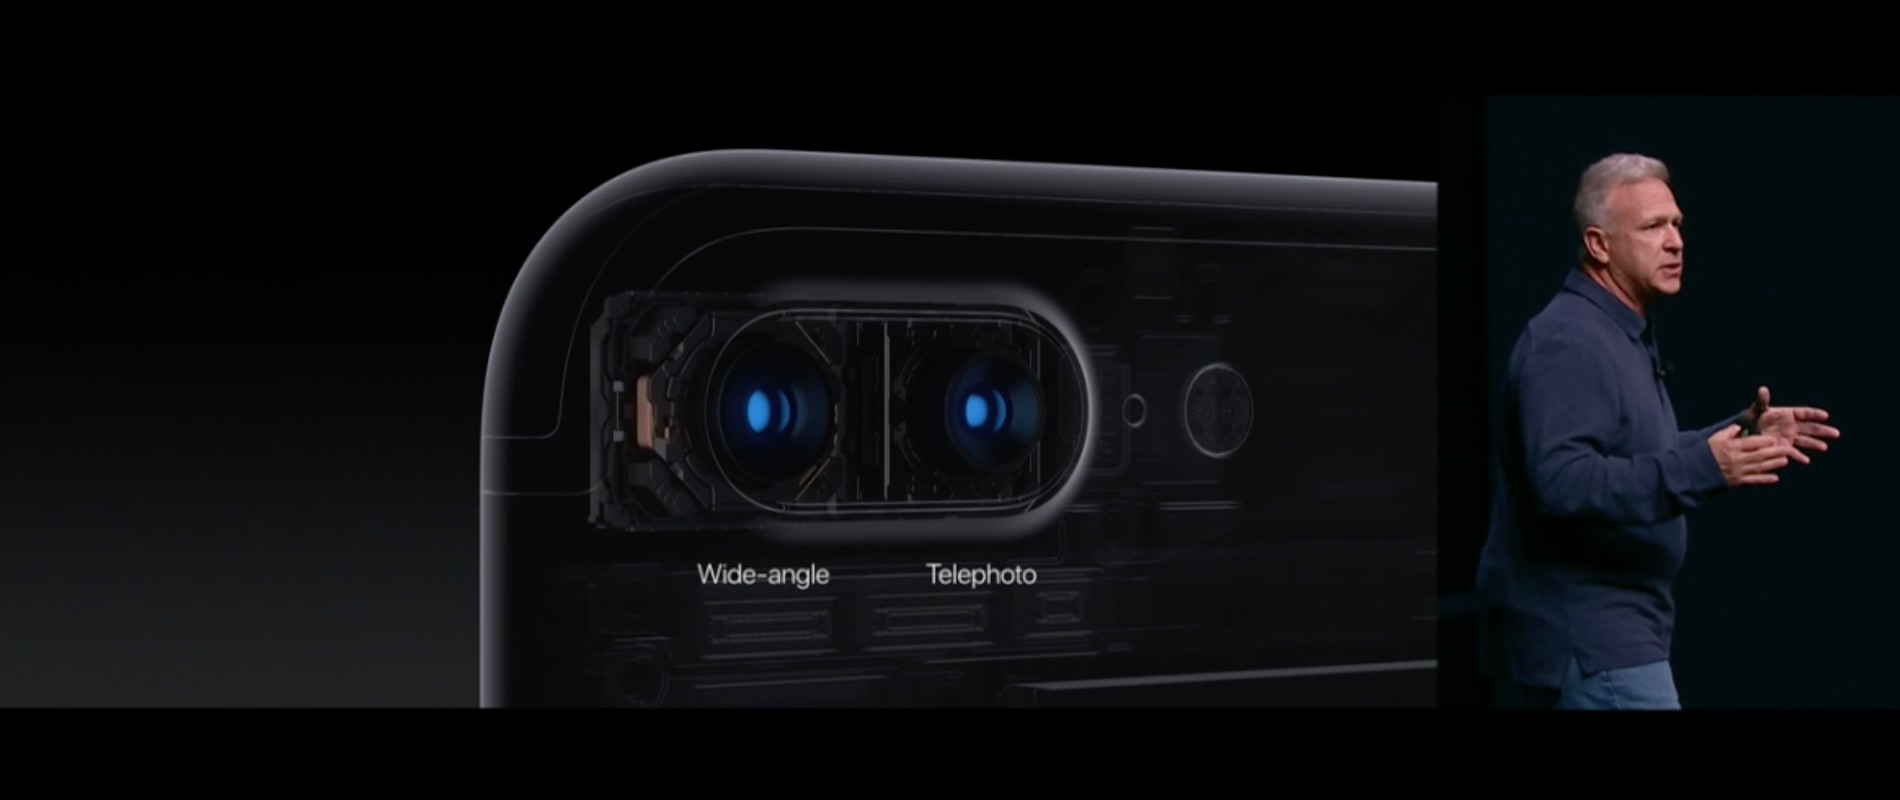 iphone7-plus-special-events-2016-sep-17